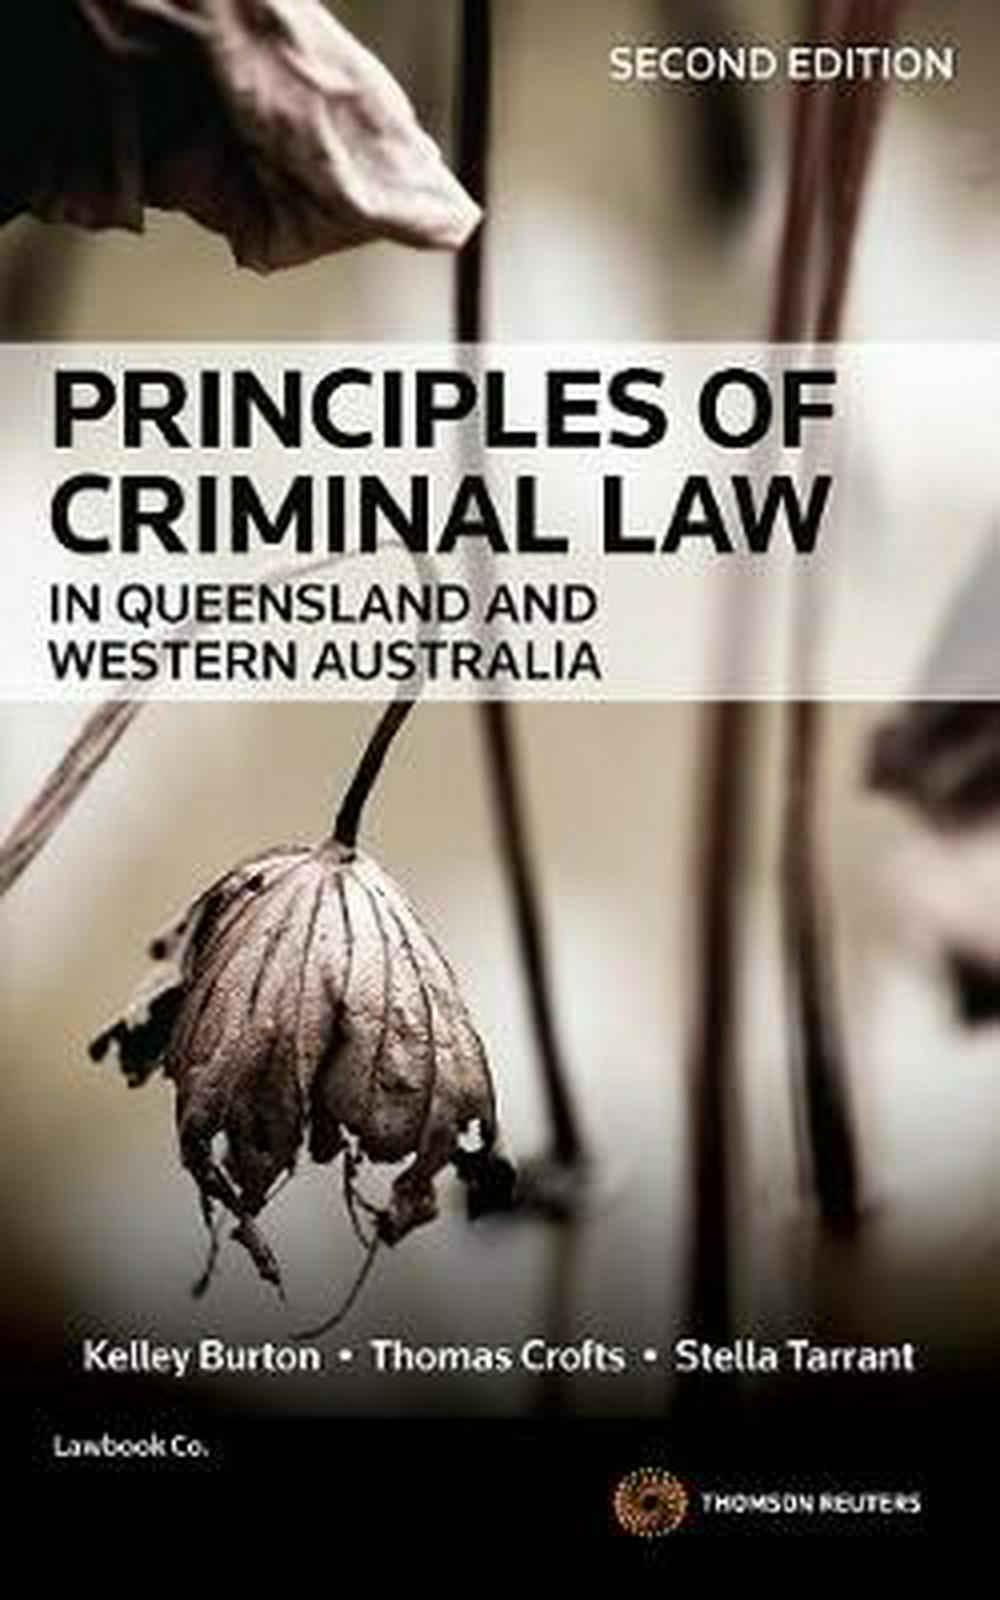 Principles of Criminal Law in Queensland and Western Australia by Burton, Crofts & Tarrant, ISBN: 9780455236971